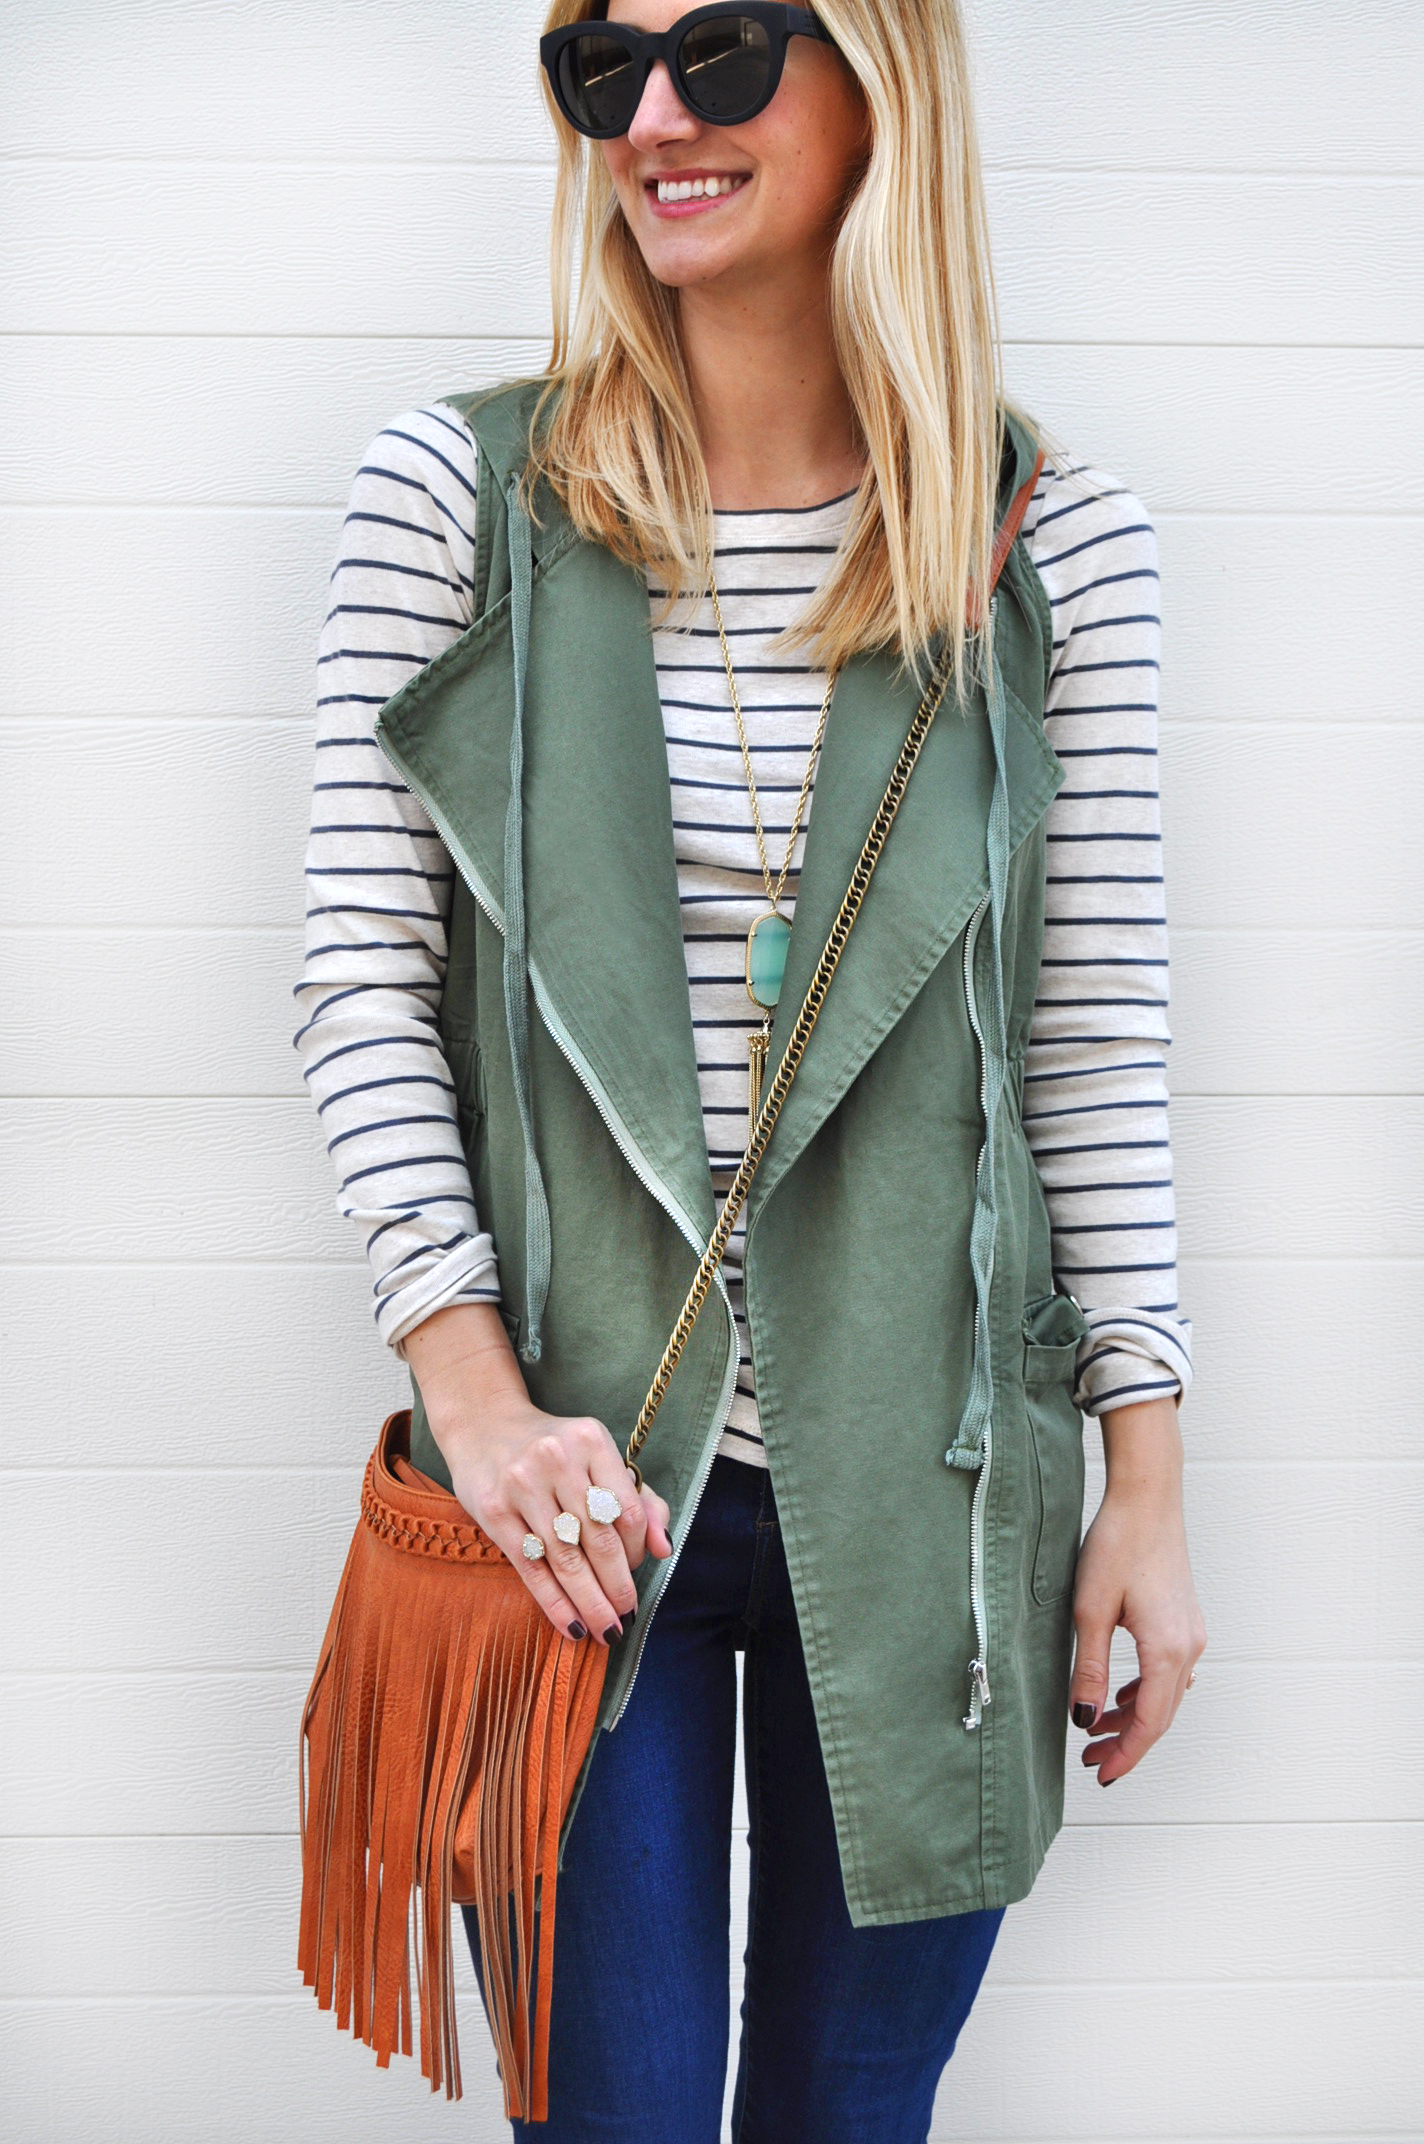 livvyland-blog-olivia-watson-army-green-utility-vest-fringe-handbag-brown-chelsea-boots-booties-austin-texas-fashion-blogger-3